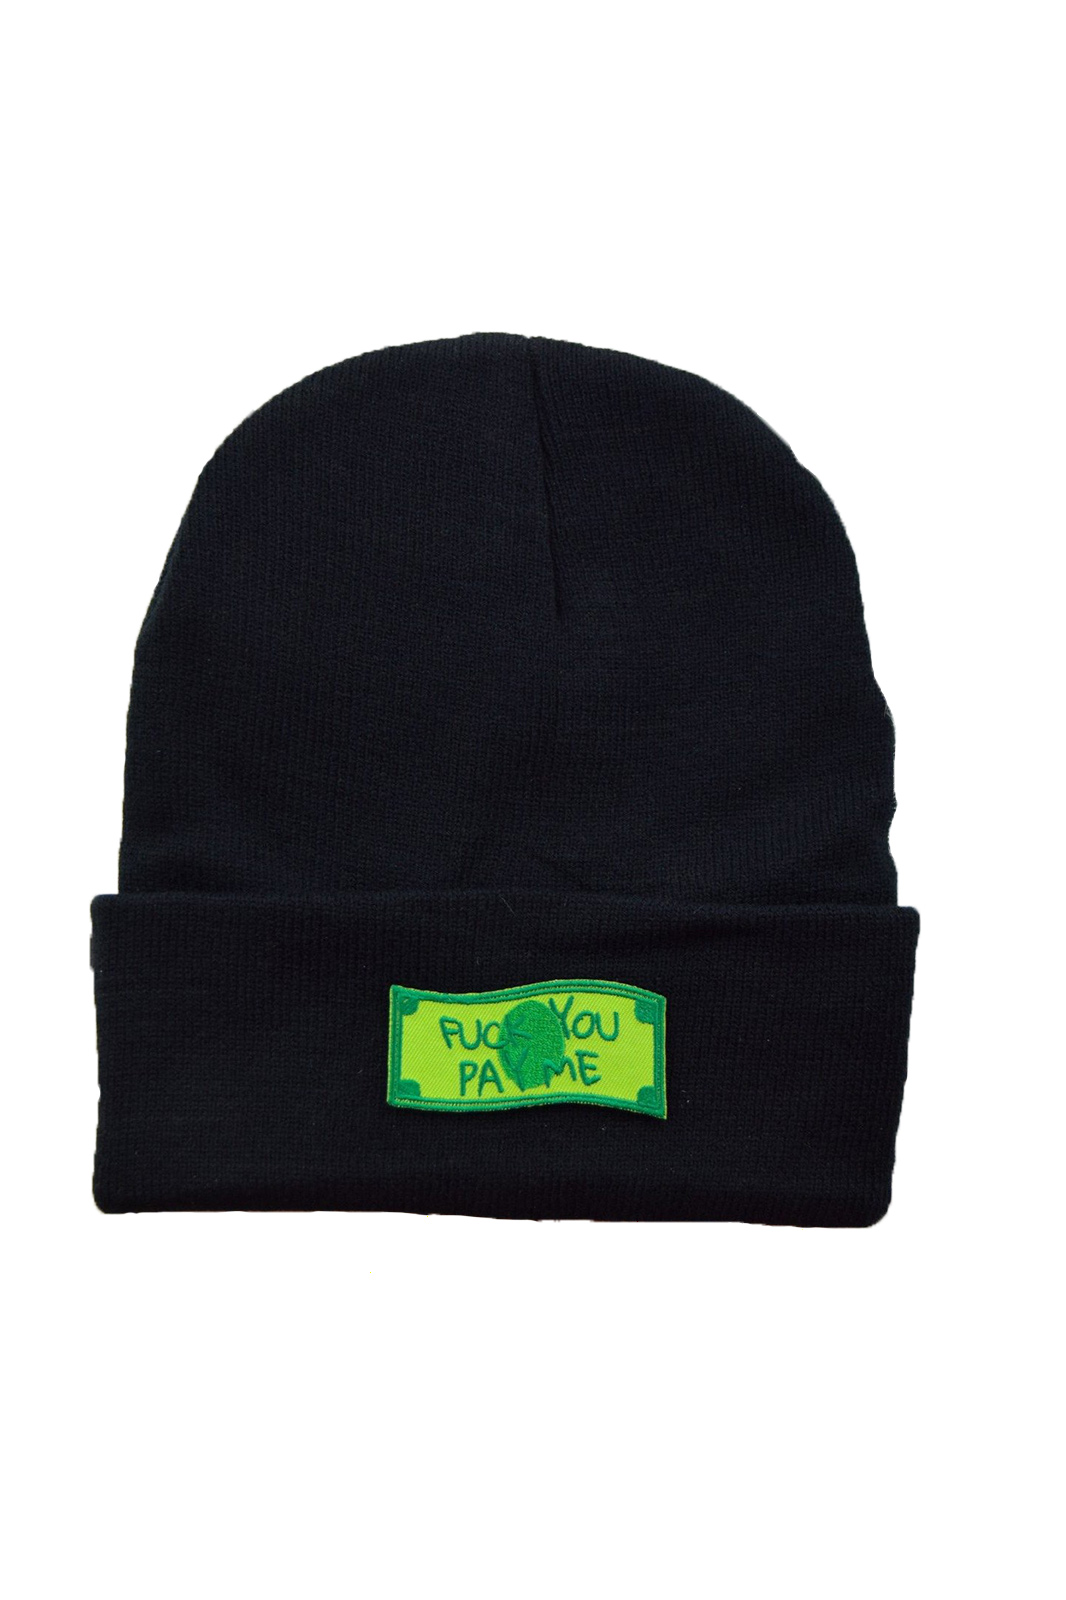 Fuck You Pay Me Beanie